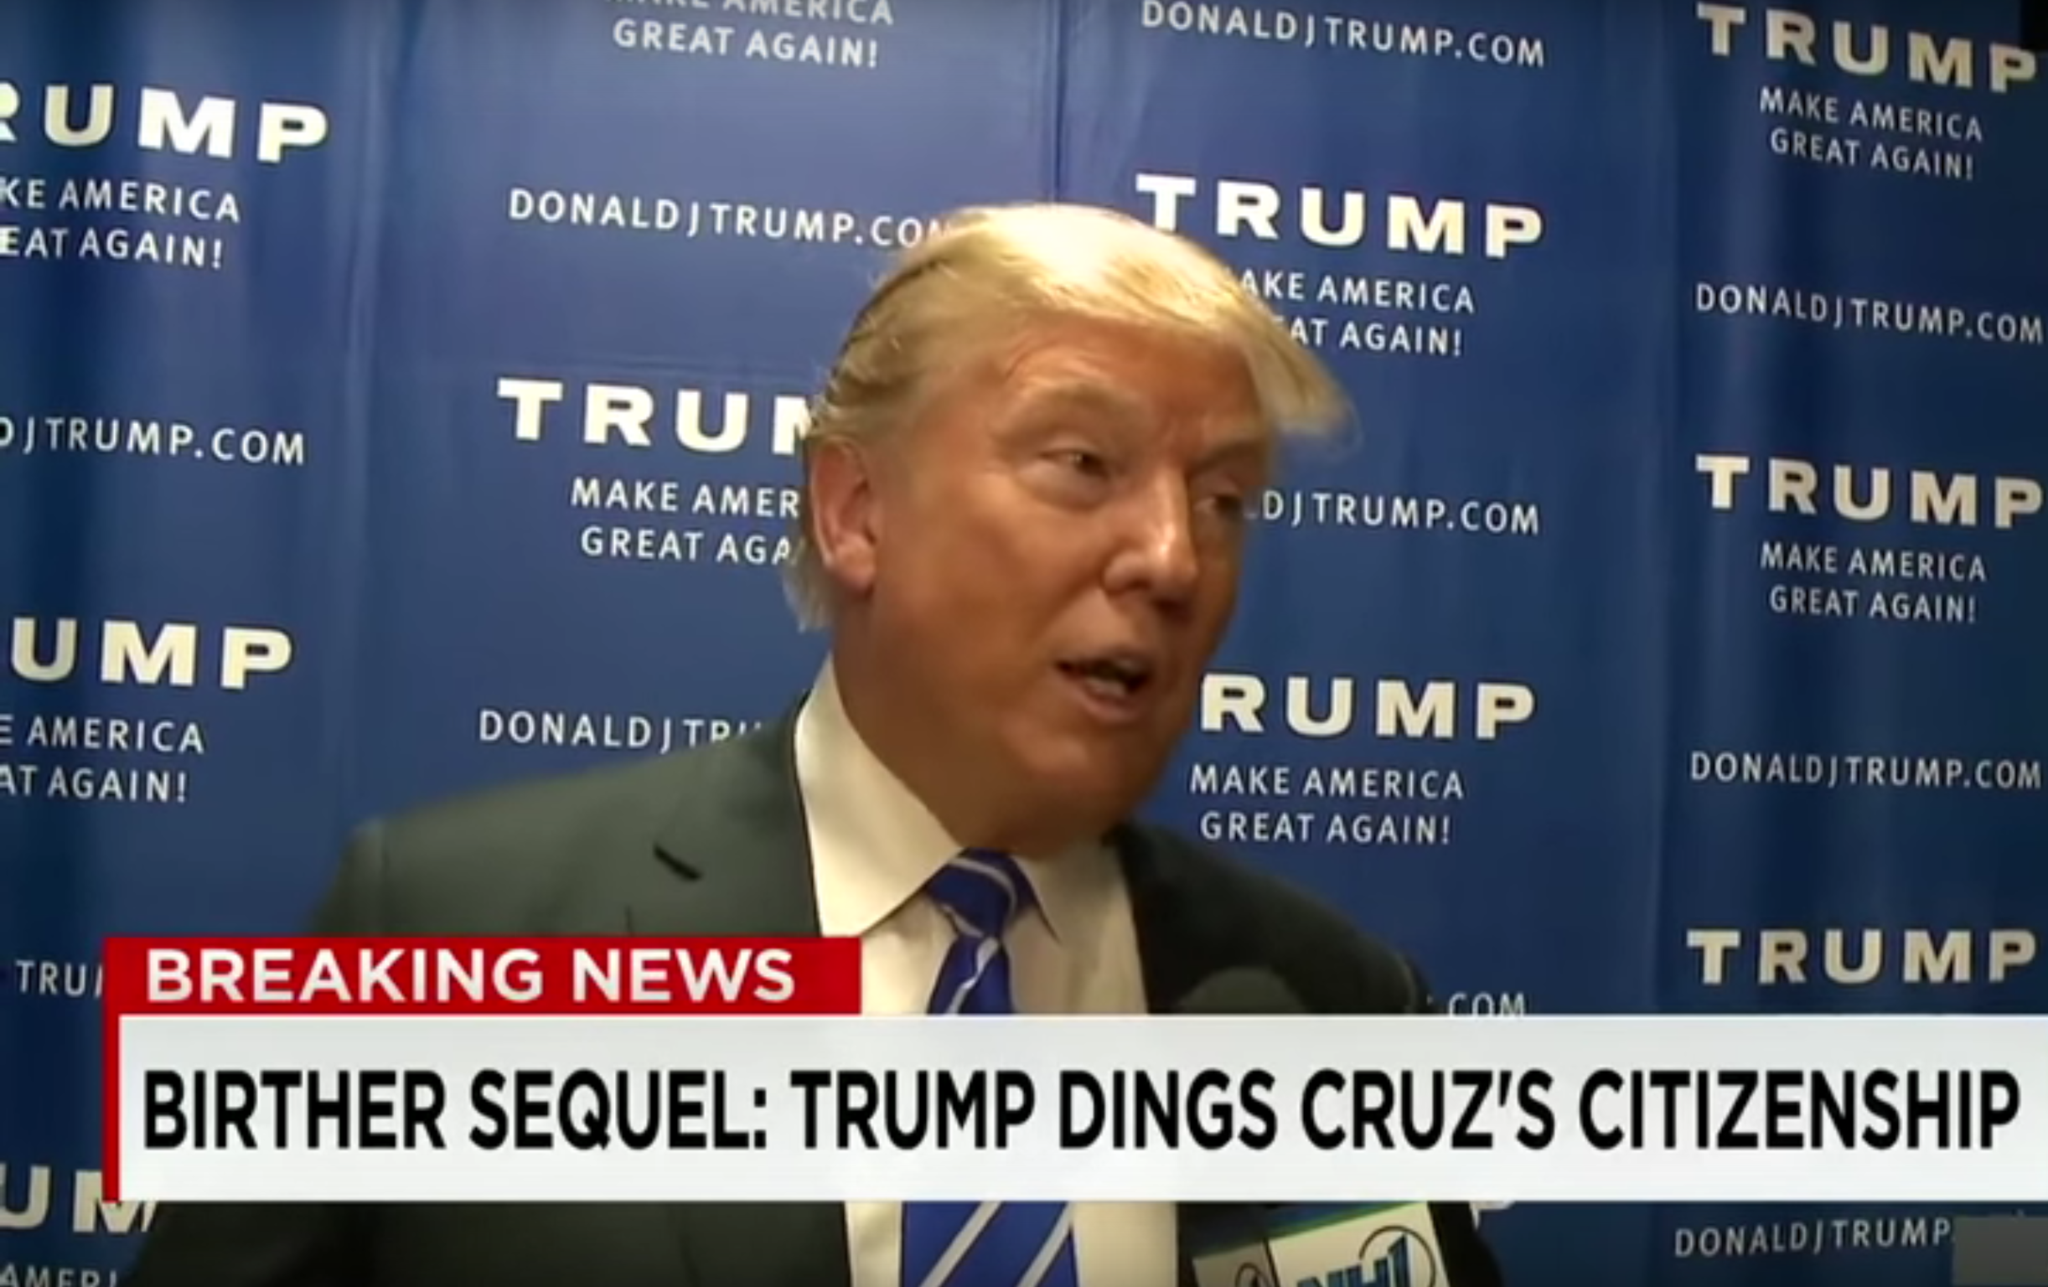 VIDEO: Donald Trump Questions Legal Status of Canadian Born Ted Cruz